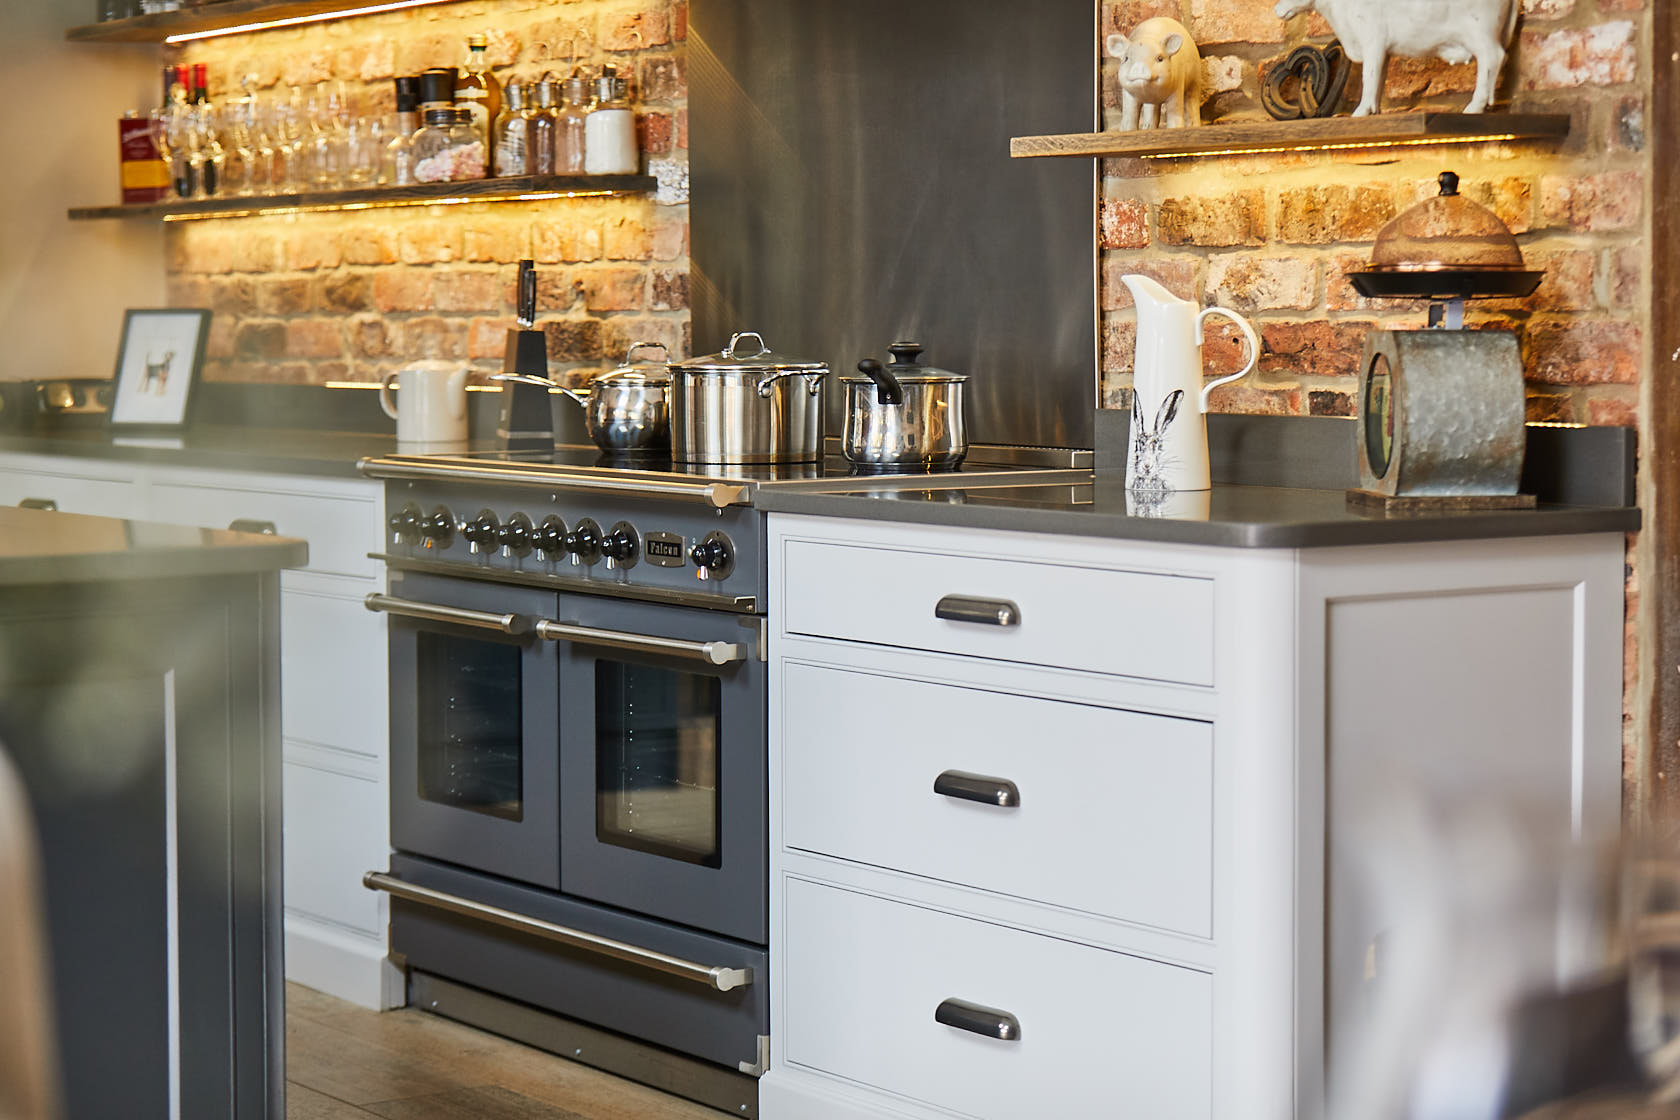 Pan drawers with Finesse pewter cup handles and Caesarstone worktop